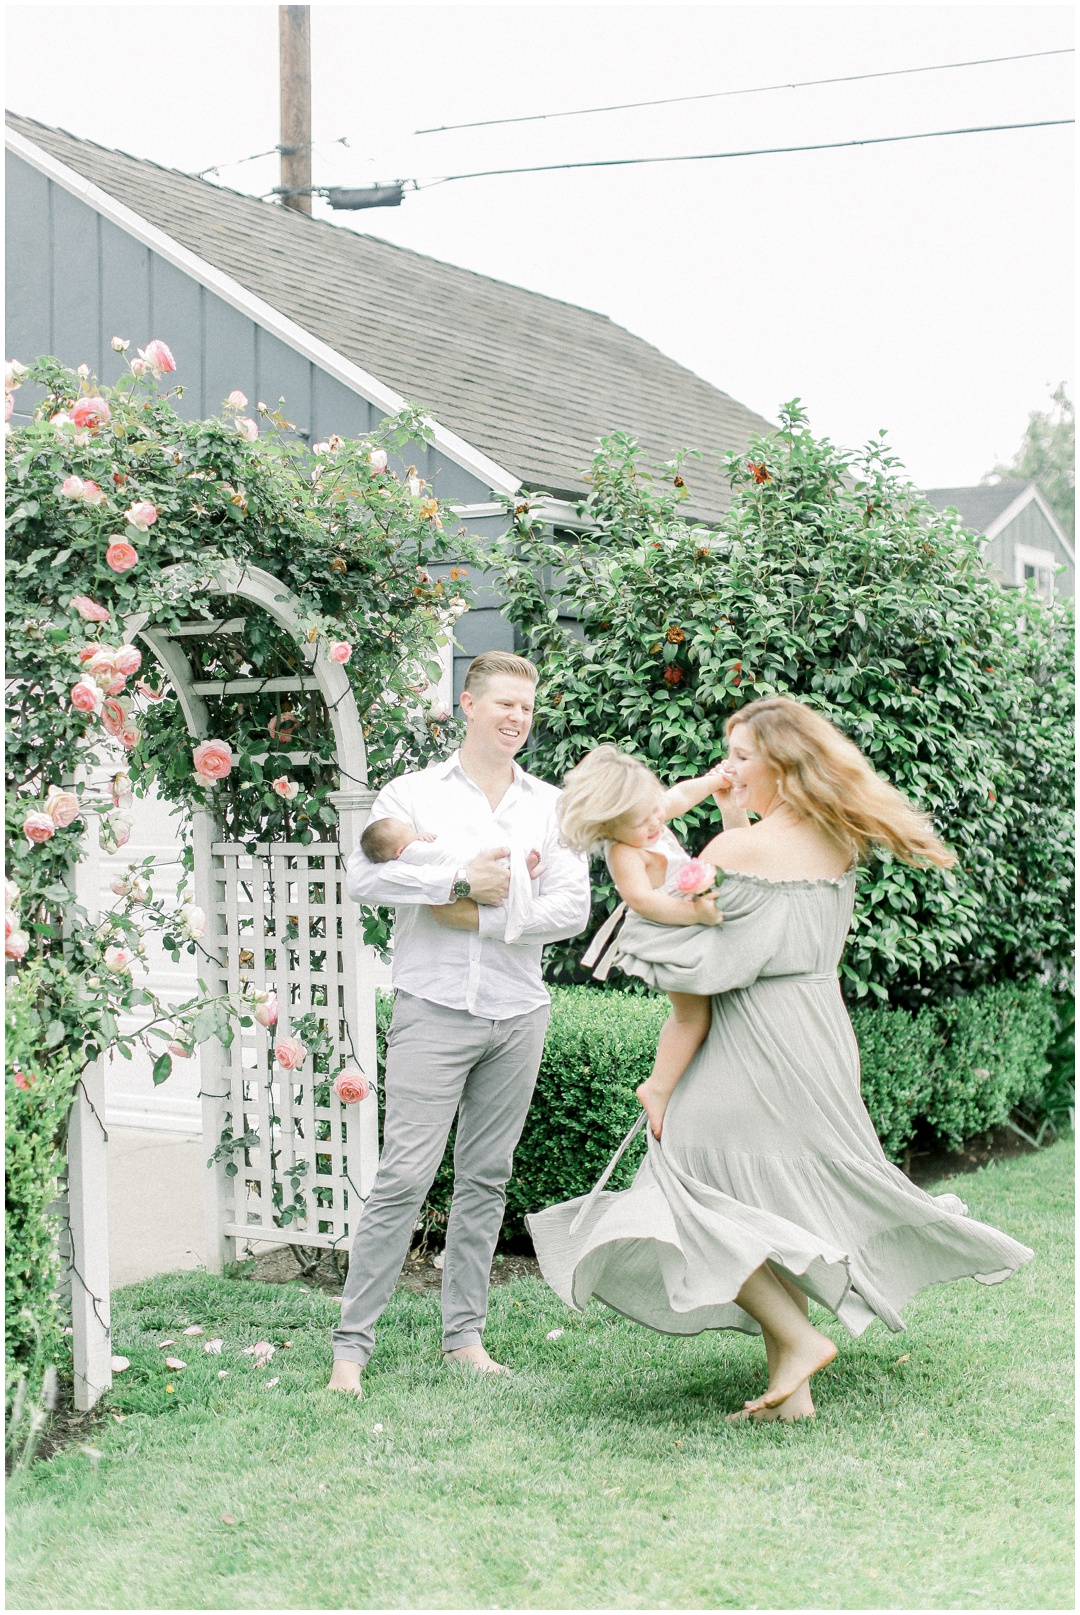 Newport_Beach_Newborn_Light_Airy_Natural_Photographer_Newport_Beach_Photographer_Orange_County_Family_Photographer_Cori_Kleckner_Photography_Newport_Beach_Photographer_Blaire_Baker_Brett_Baker_Caroline_Baker__3927.jpg